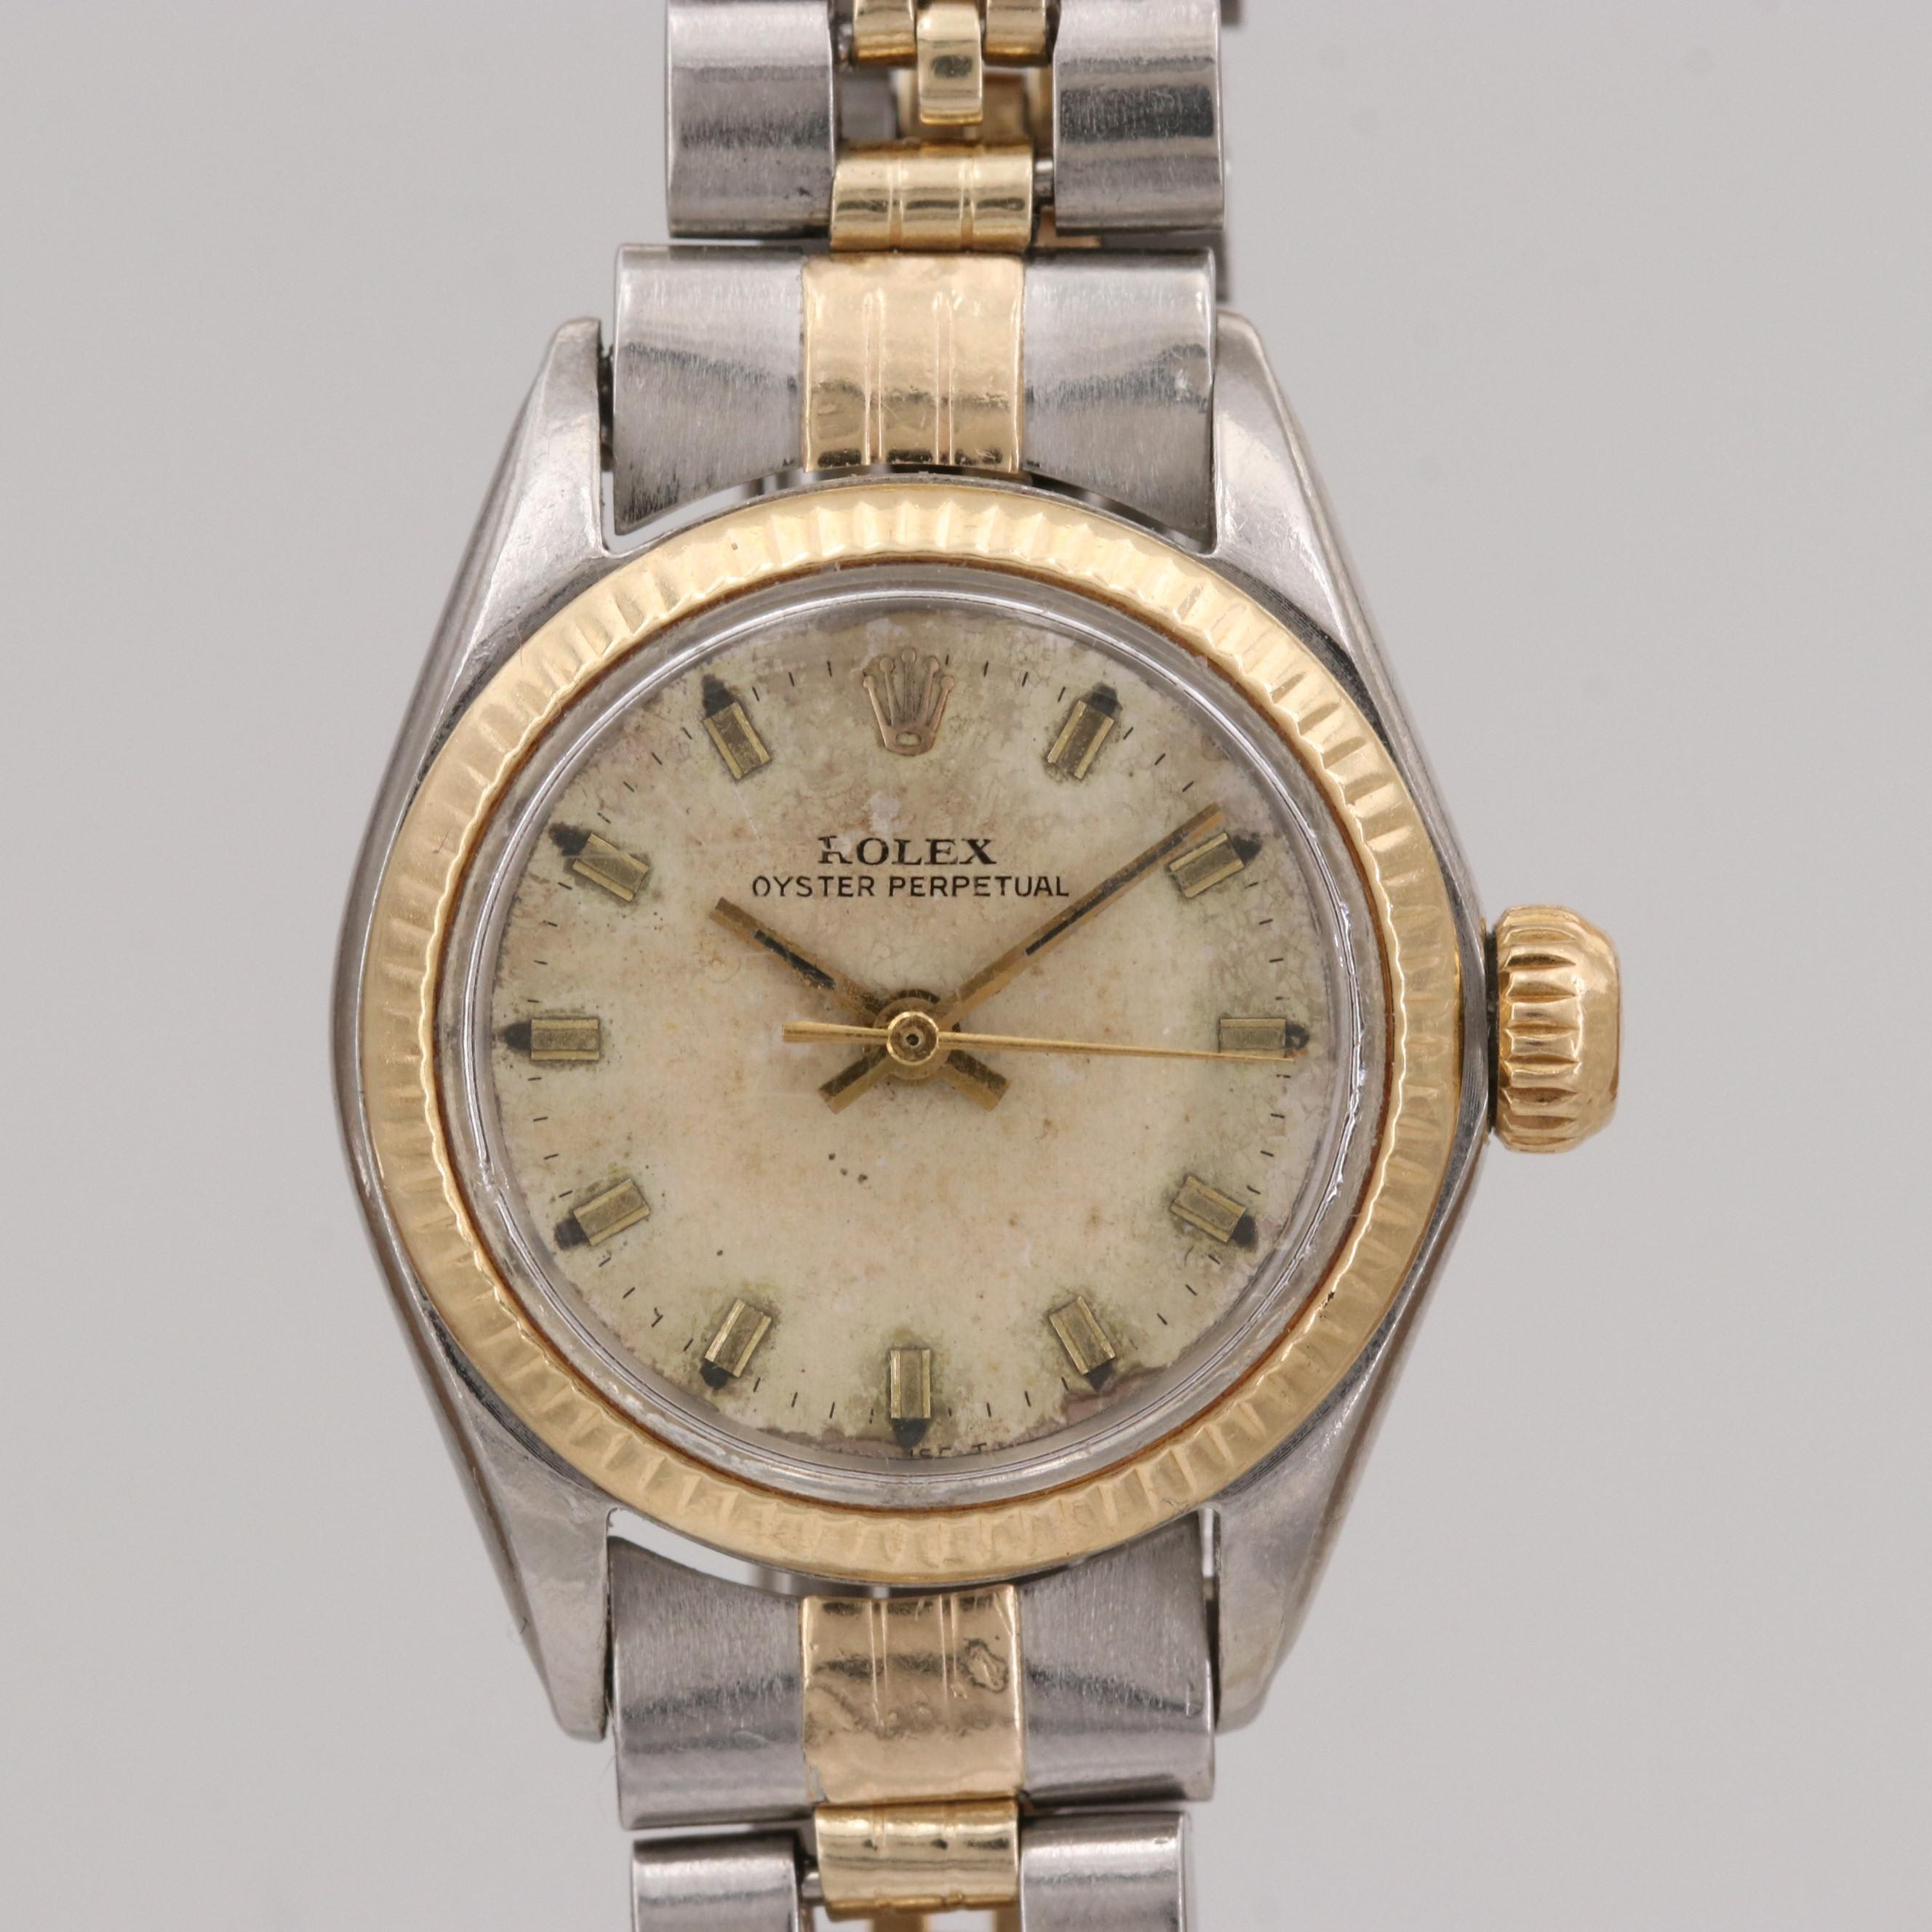 Vintage Rolex Oyster Perpetual Stainless Steel and 18K Yellow Gold Wristwatch, 1